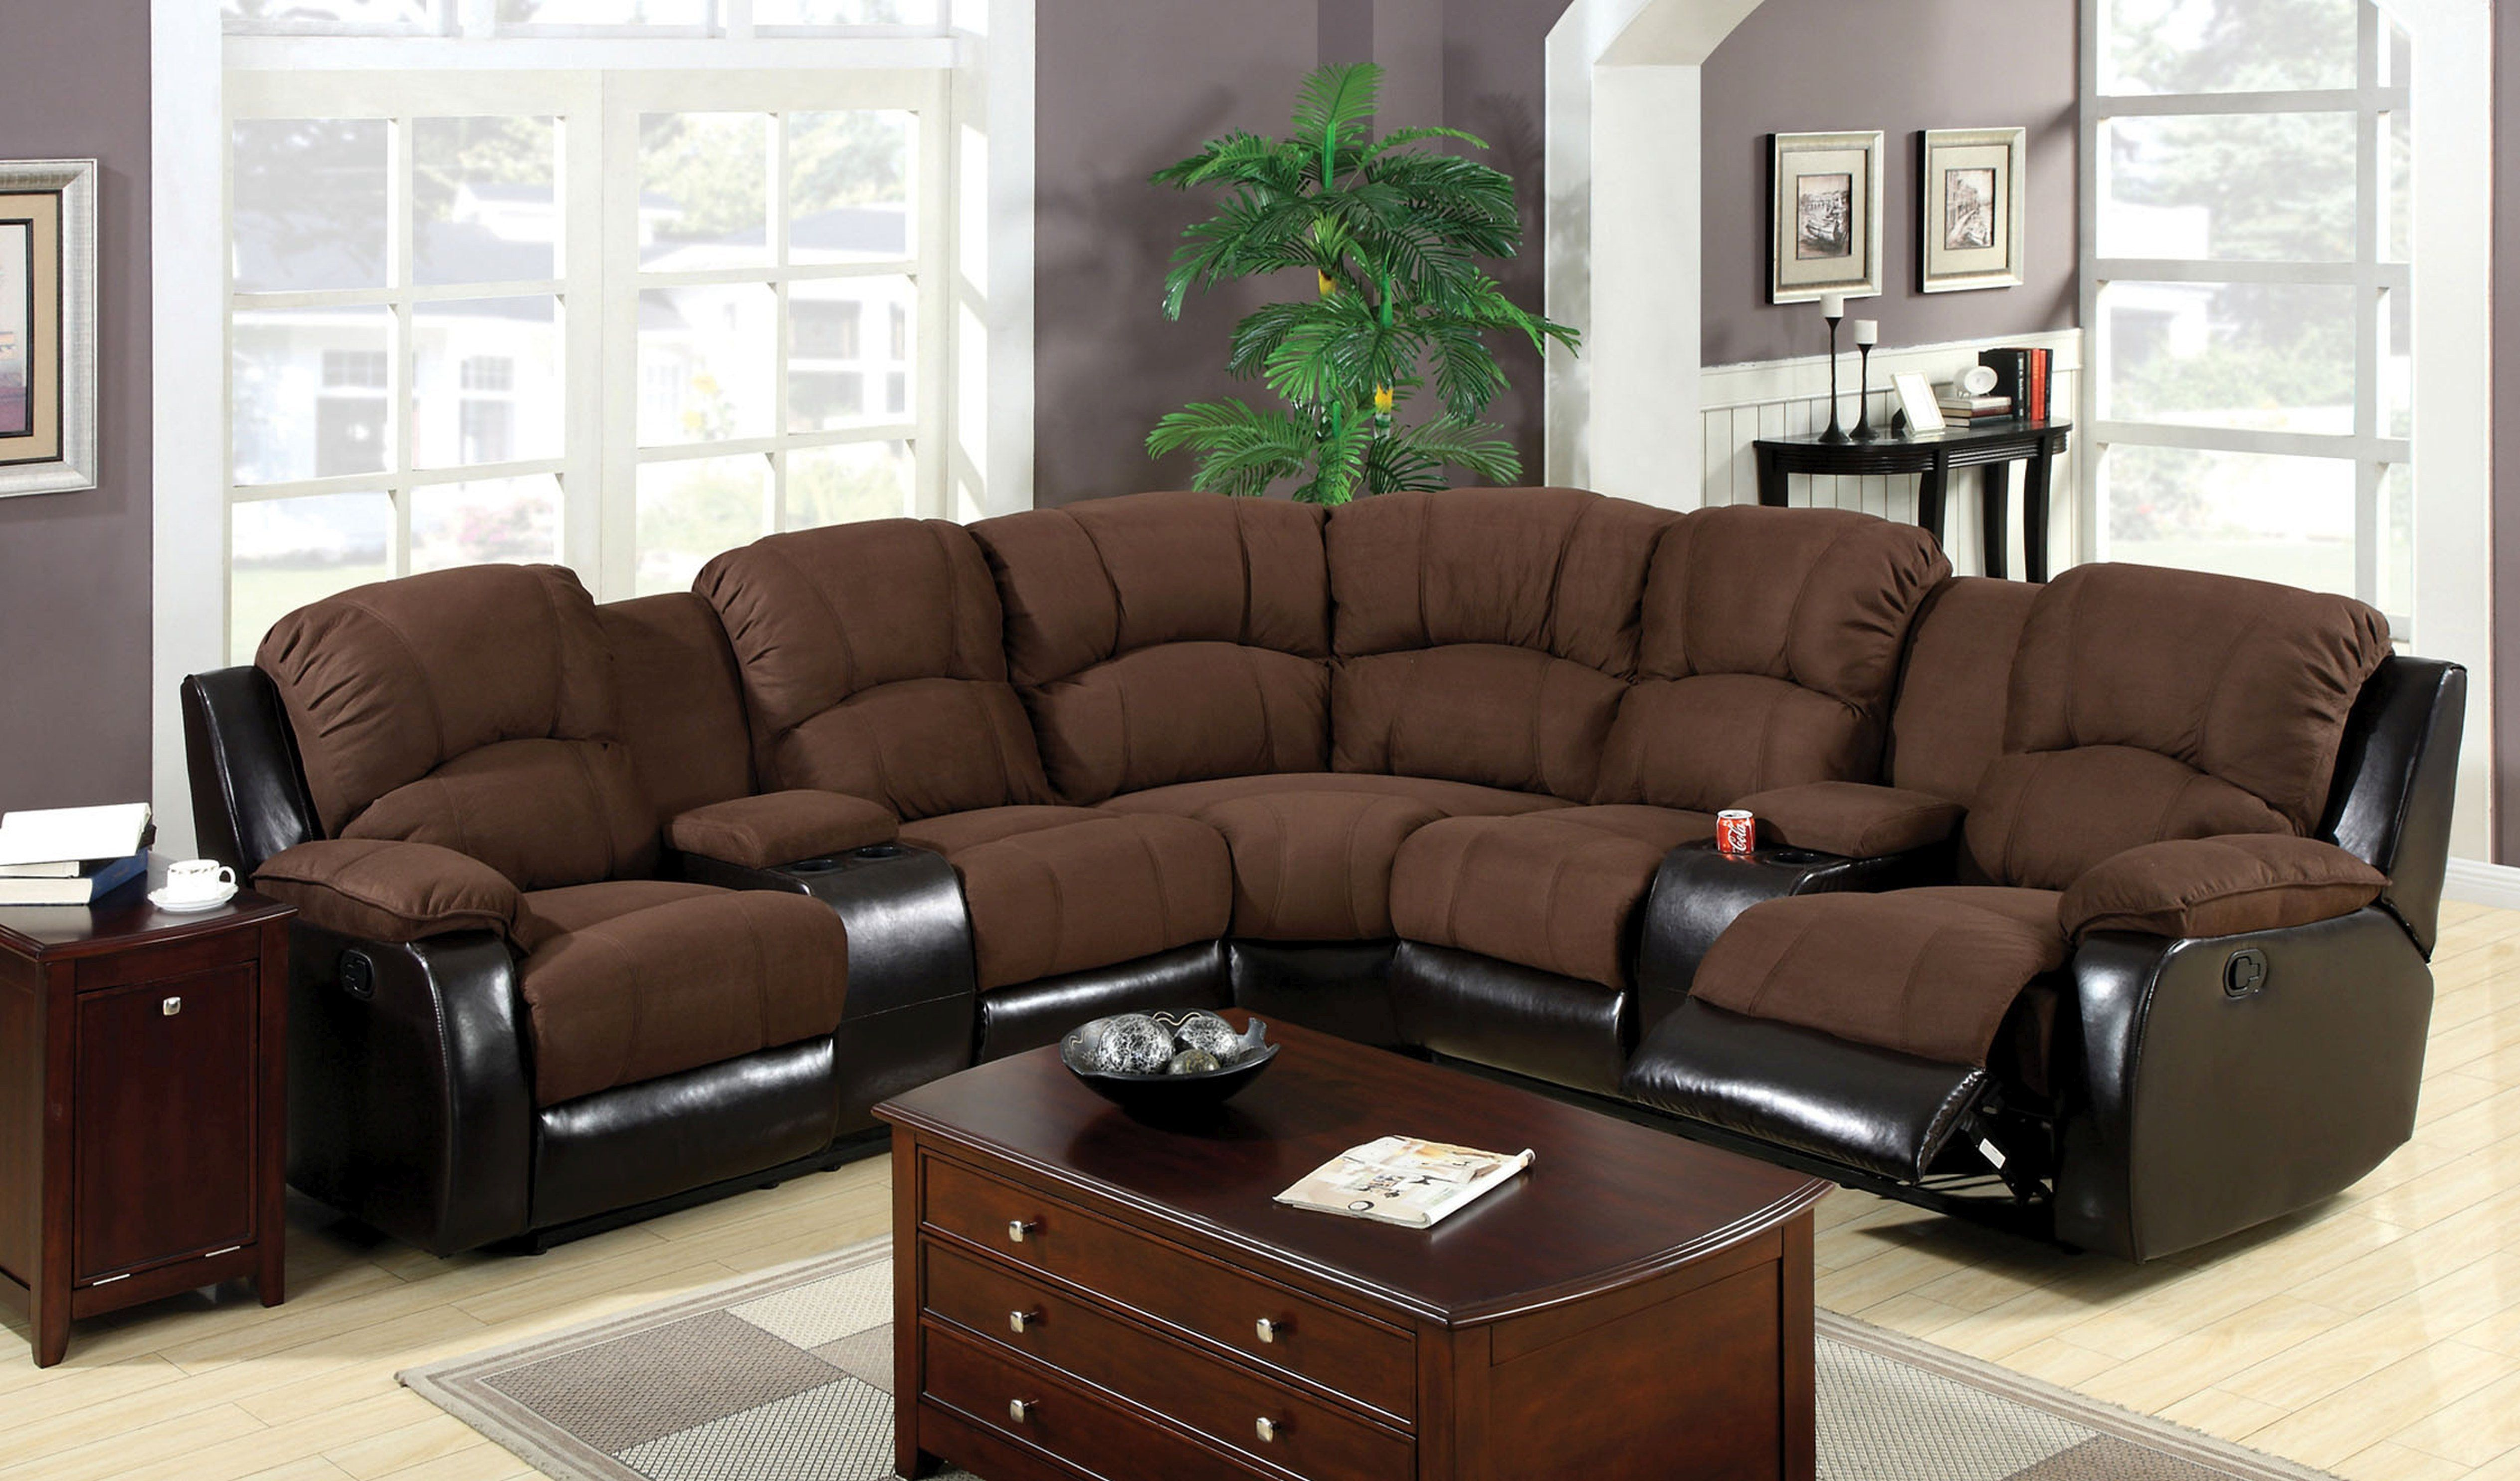 Santi Contemporary Style Plush Brown Elephant Skin Microfiber And Leatherette Sectional Recliner Sectional Sofa With Recliner Sectional Sofa With Chaise Sectional Sofa Couch